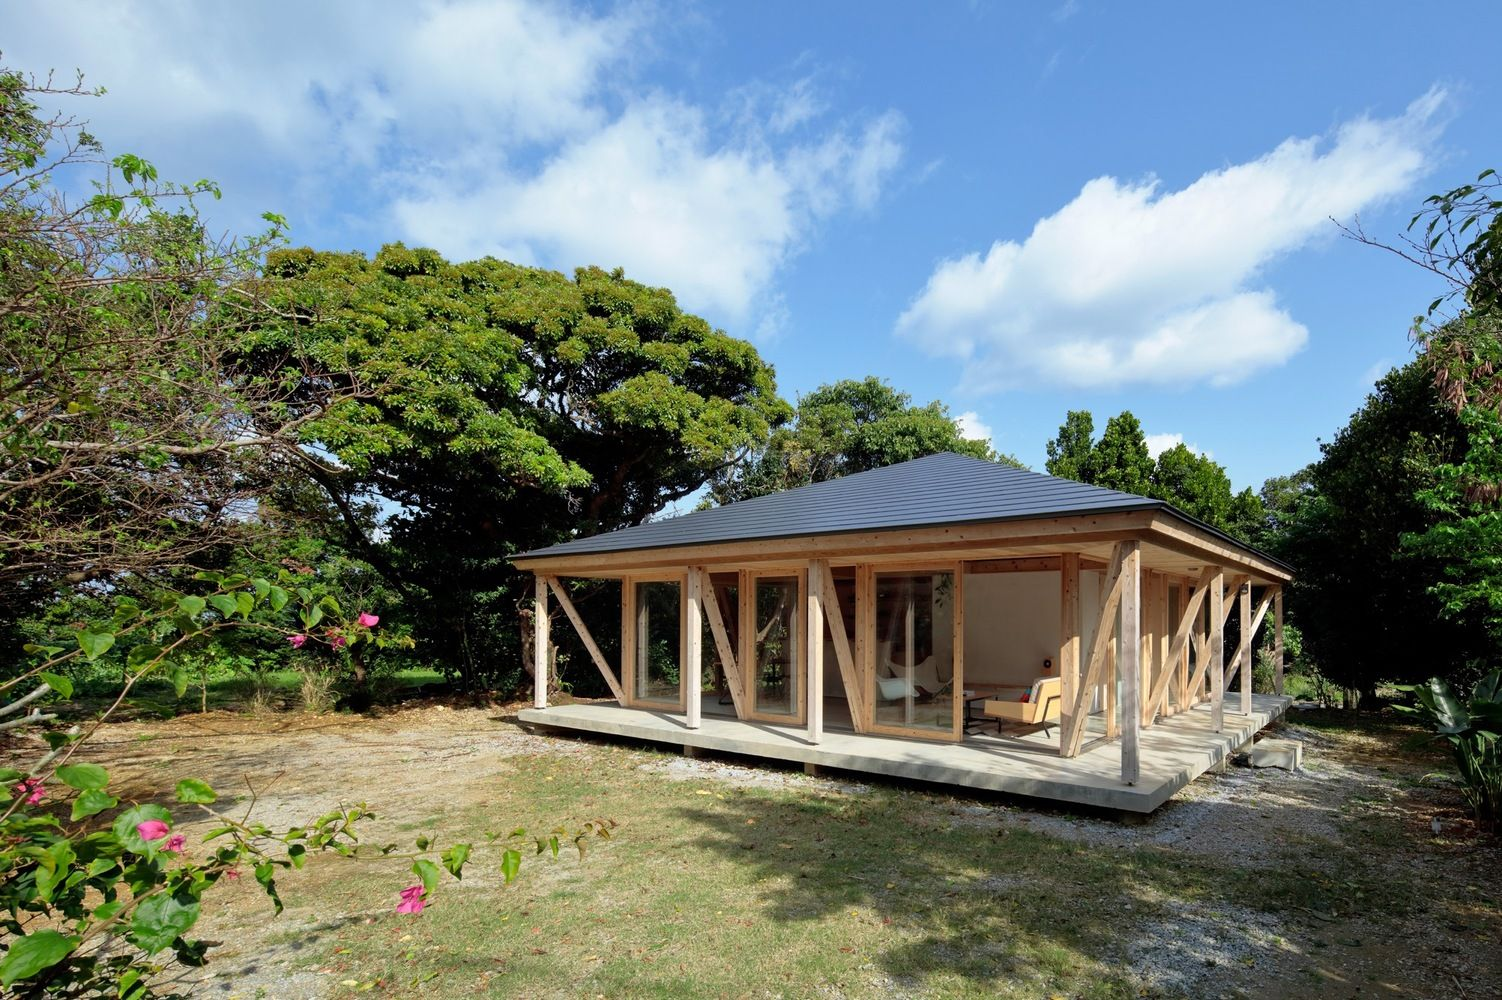 This small house from Japan has been built in the style of the ...